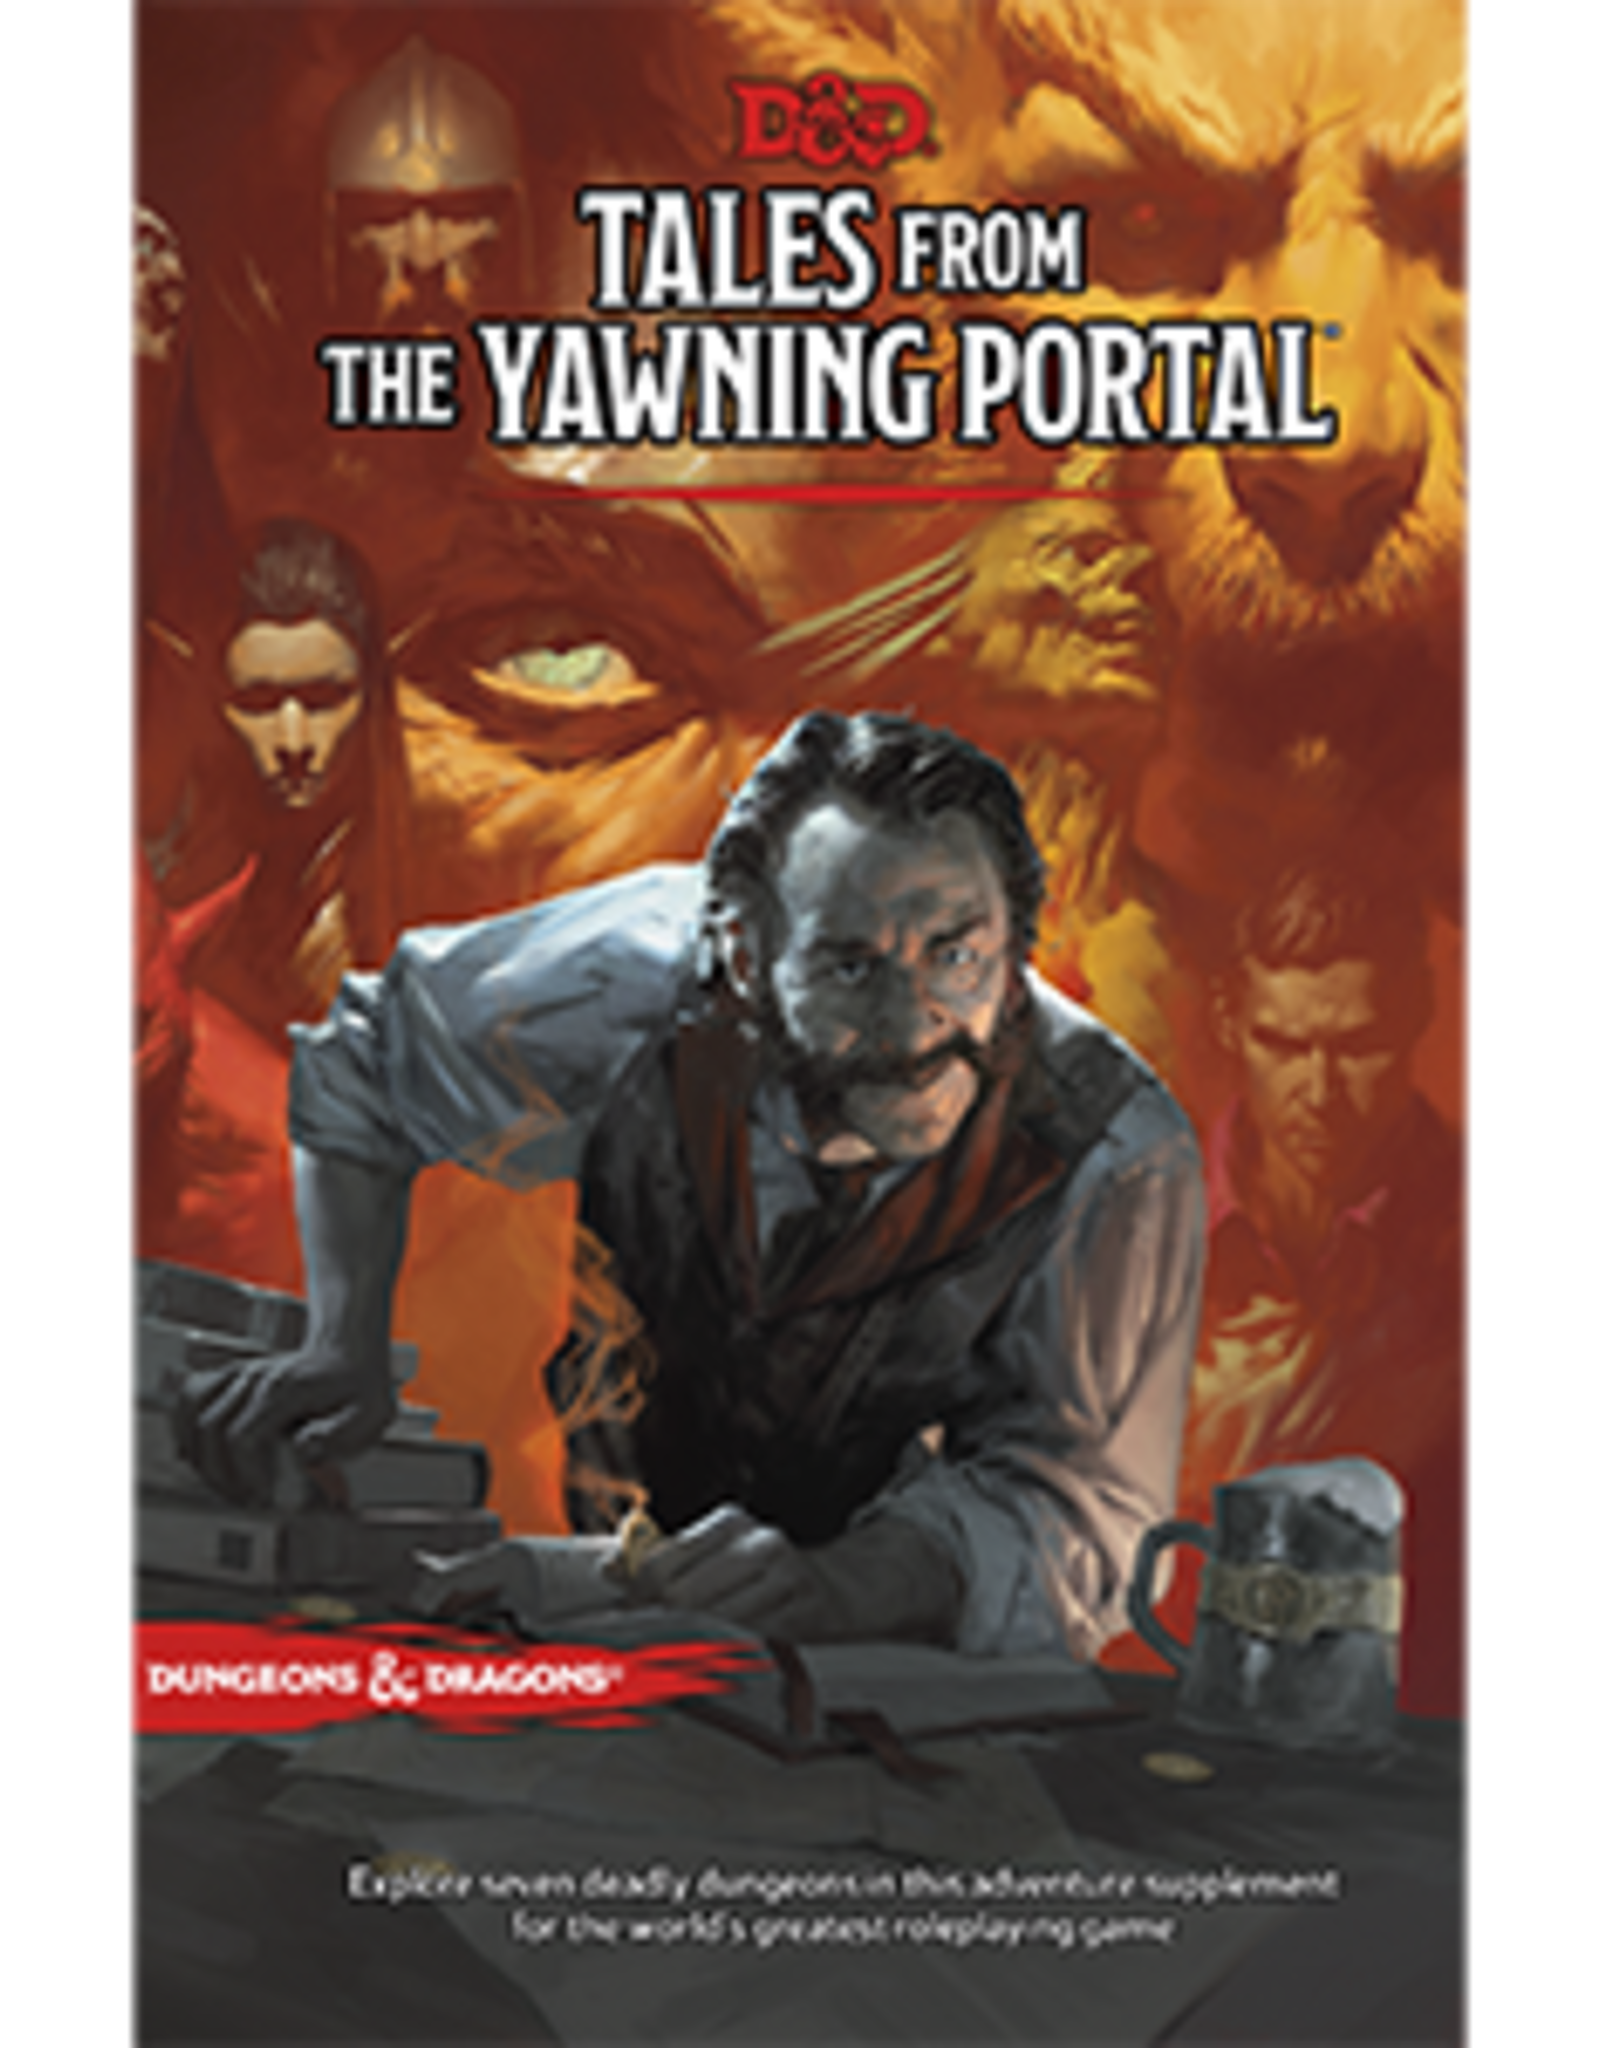 WOTC D&D: Tales from the Yawning Portal